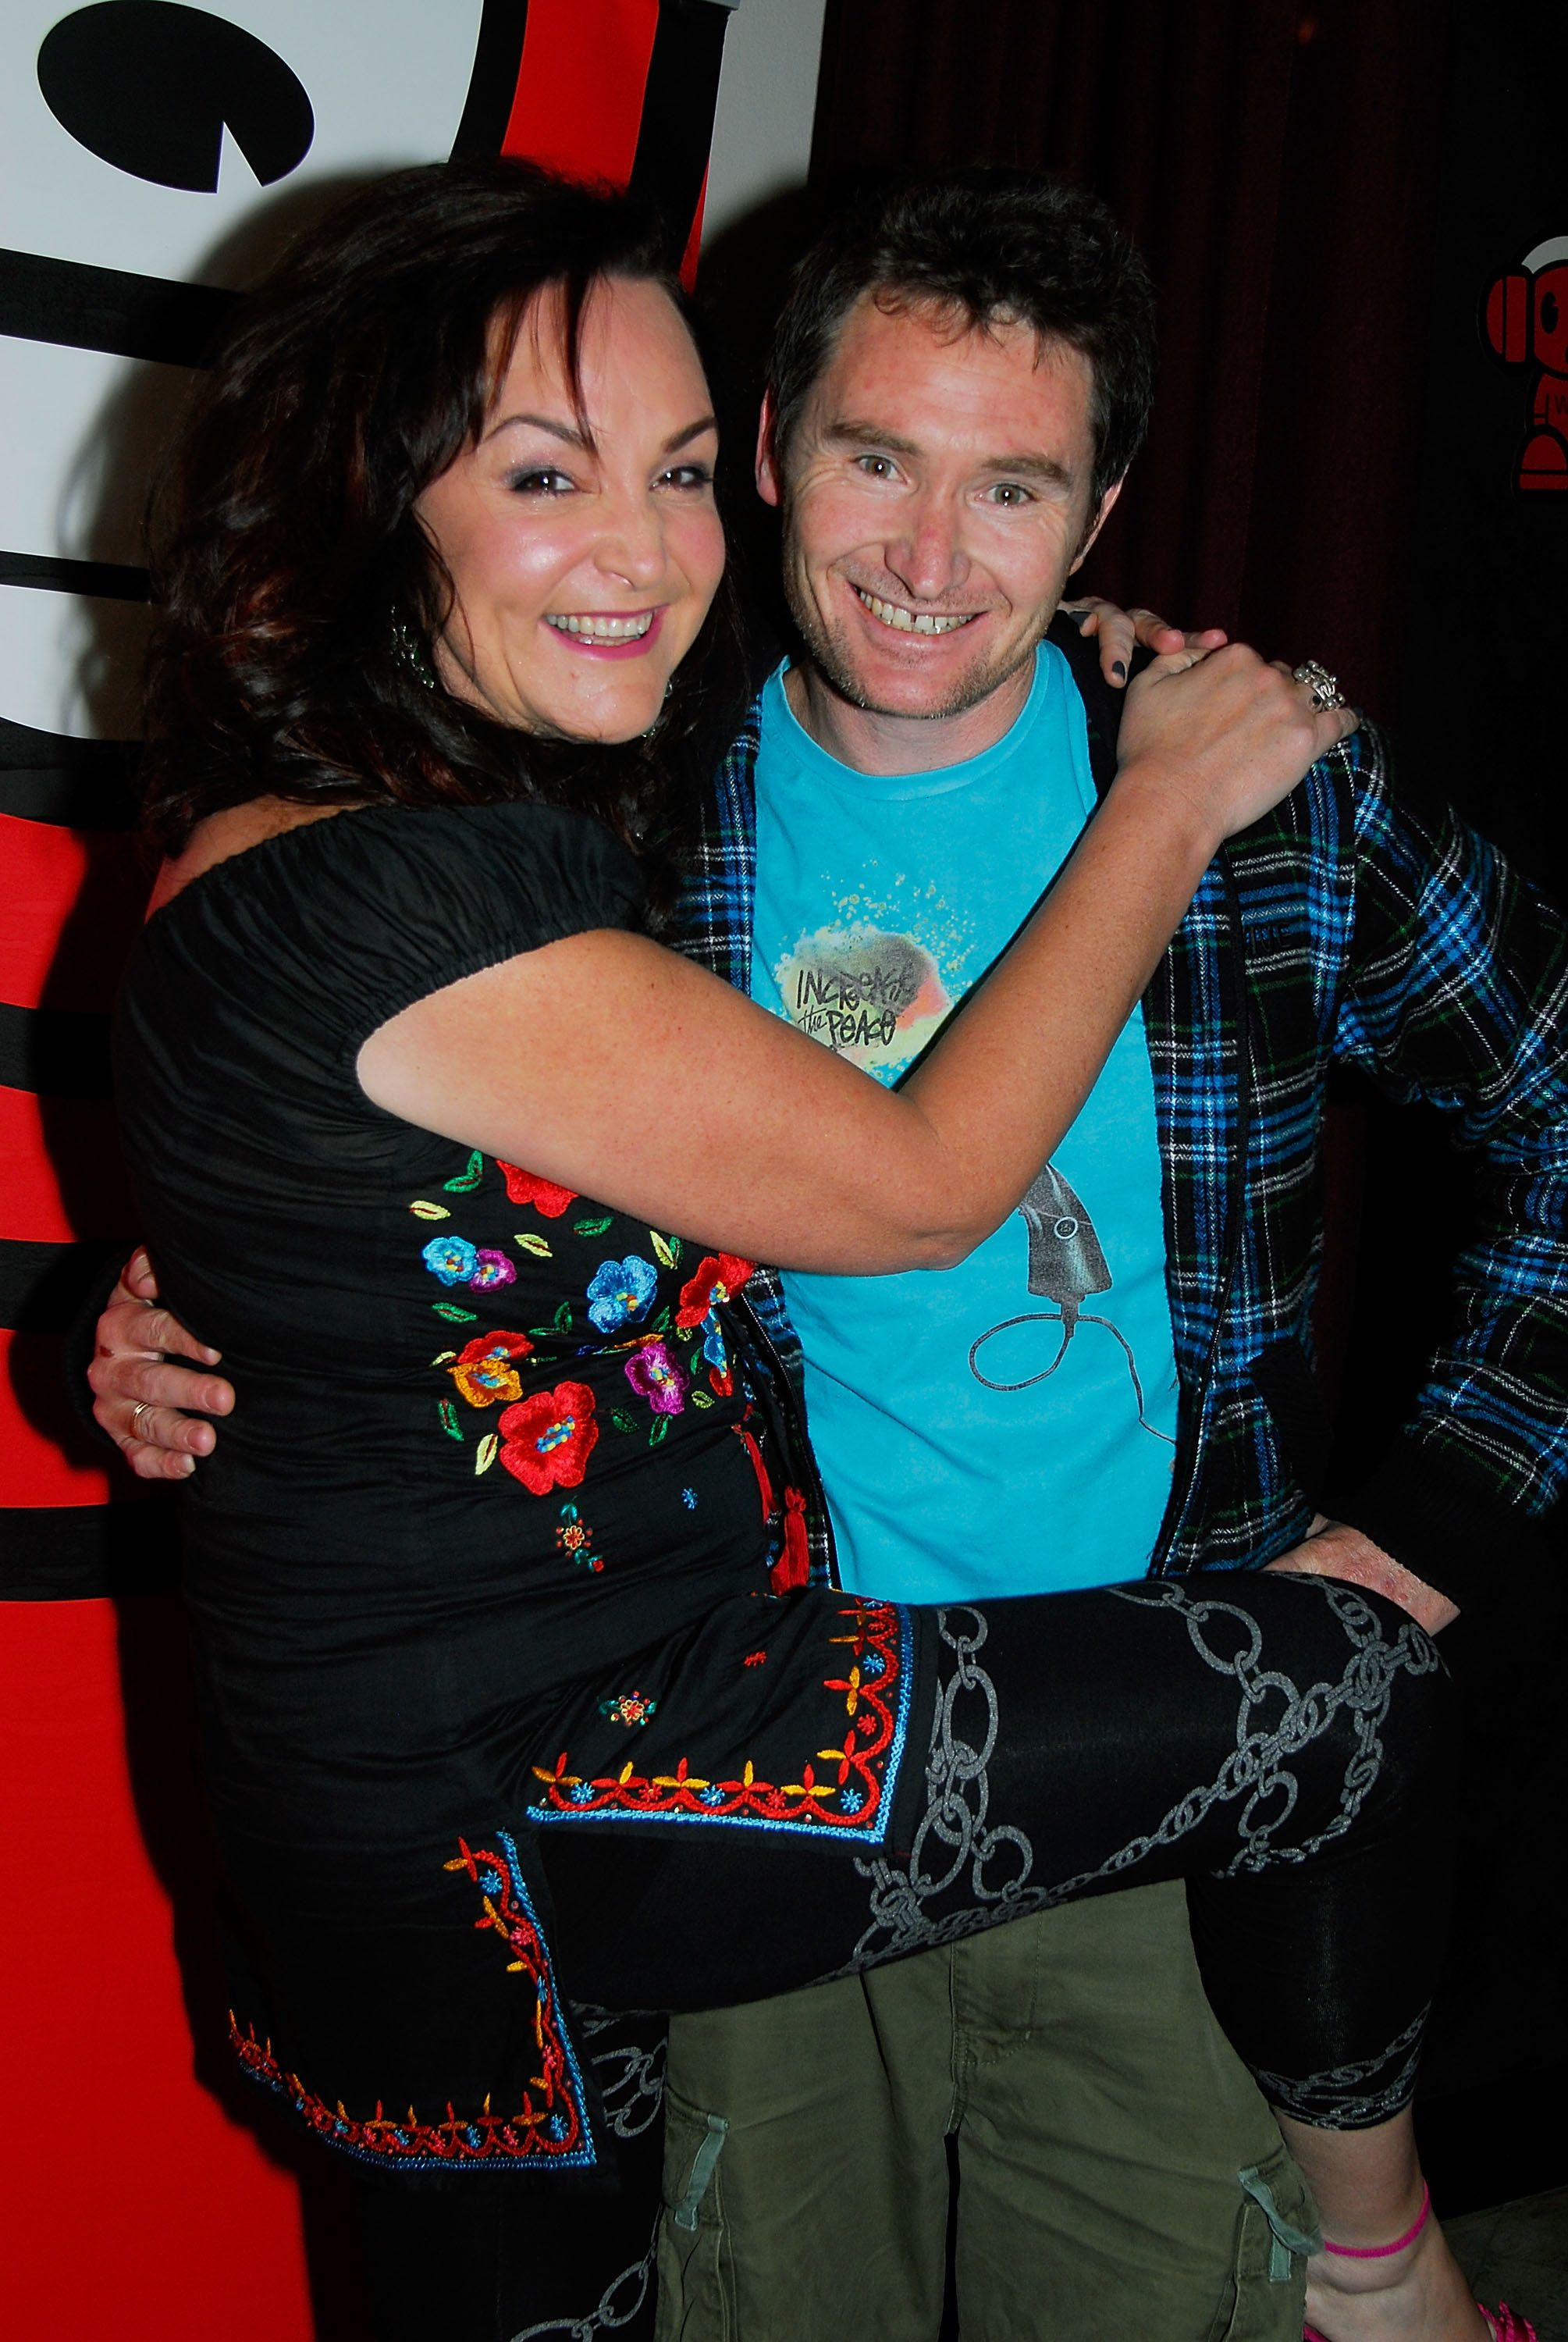 SYDNEY, AUSTRALIA - JULY 03: Stand Up Comedian/Broadcaster (R) Dave Hughes and co host (L) Kate Langbroek at the pre-dinner drinks ahead of the 'Stand Up In '08' Celebrity Comedy Night at The Factory, Enmore on July 3, 2008 in Sydney, Australia.  (Photo by Ruth Schwarzenholz/Getty Images)